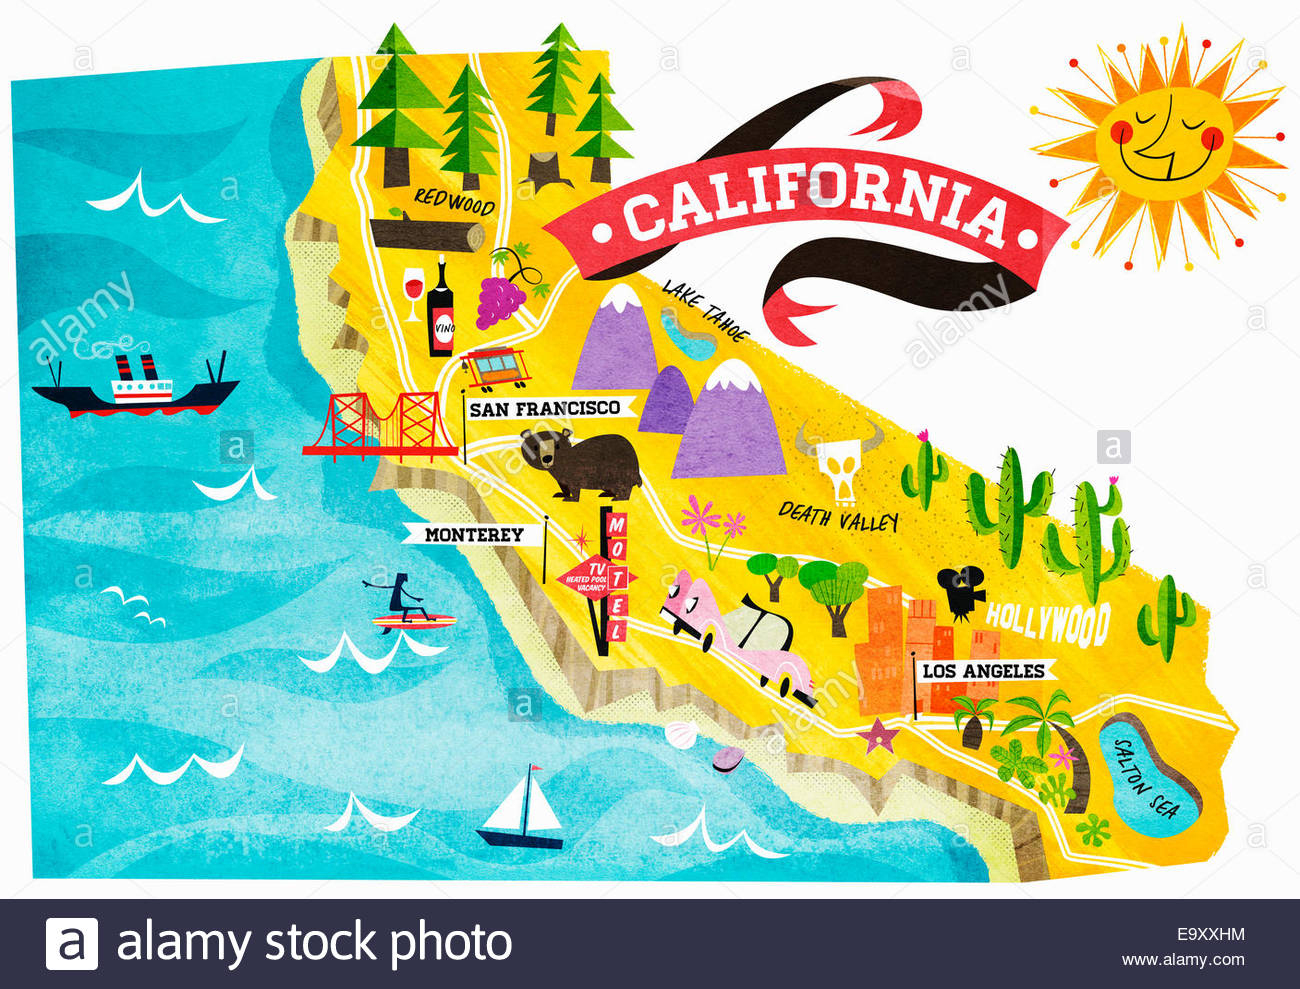 Map Of Tourist Attractions In California Exxhm Google Maps - California Tourist Attractions Map